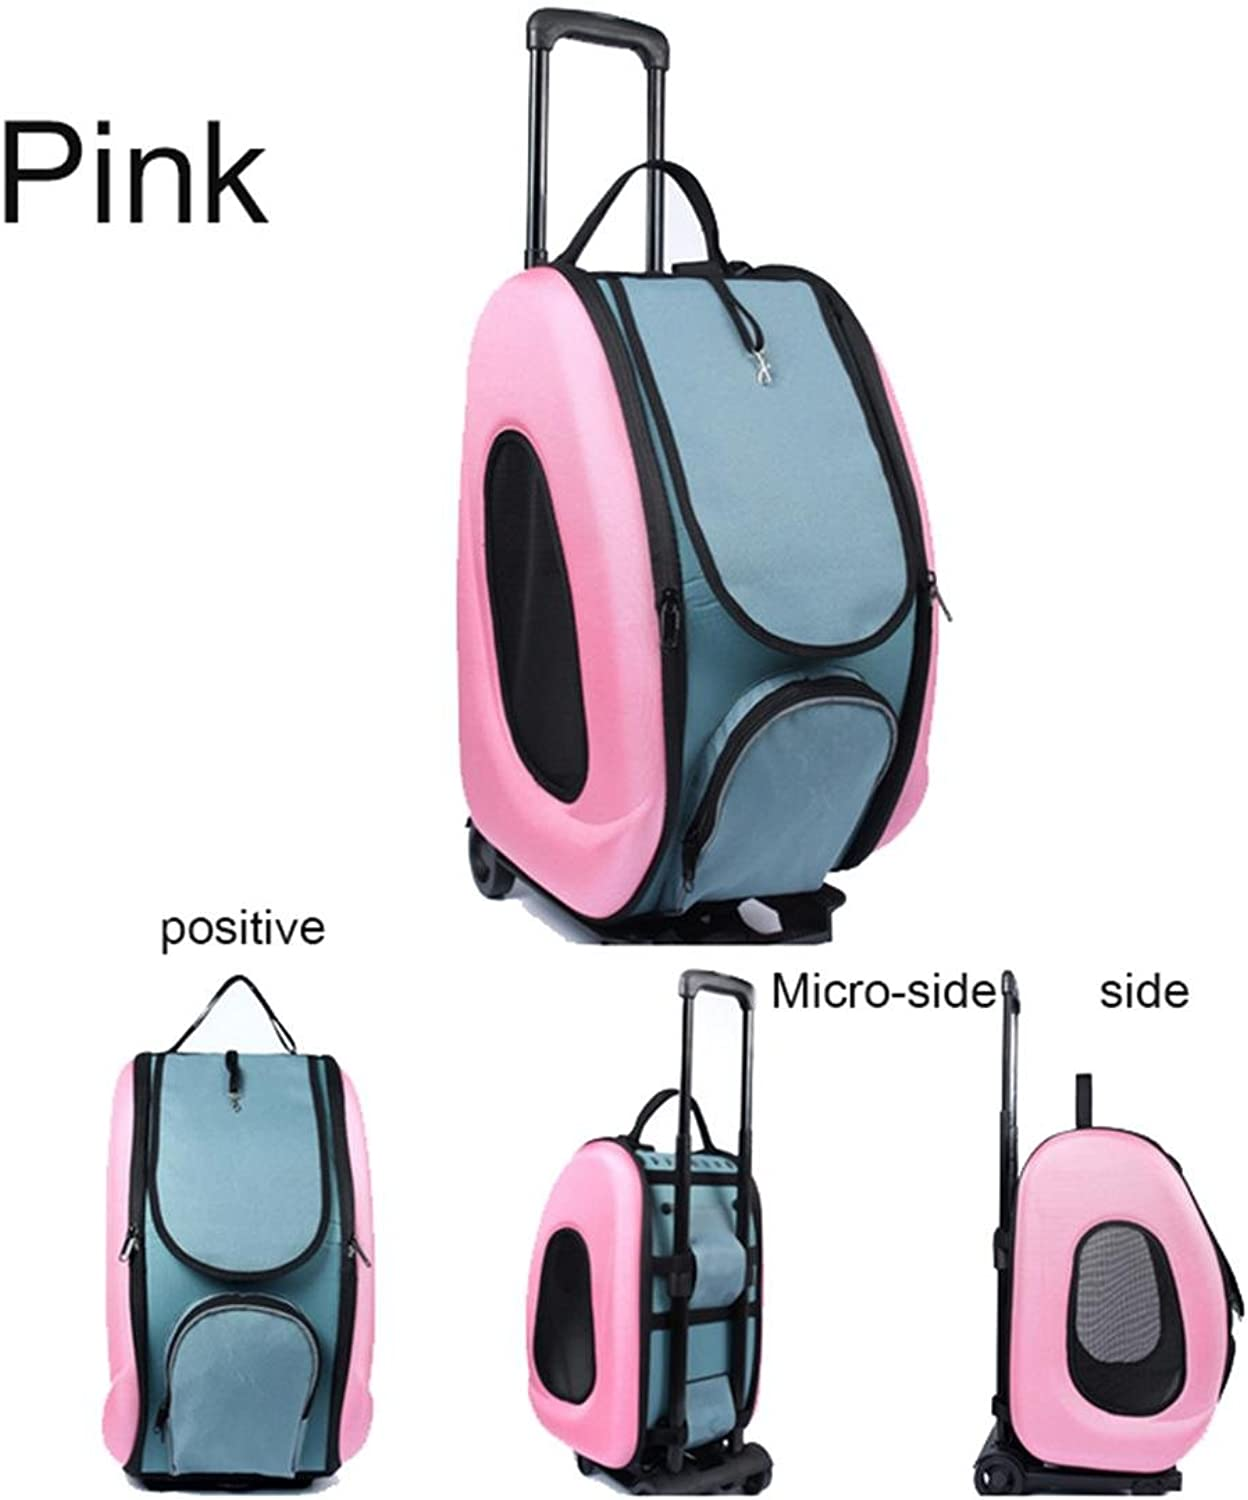 CWBB Pet Carriers For Dogs With Wheels Portable Backpack Dog Trolley Carrier Travel Bag Oxford, Pink